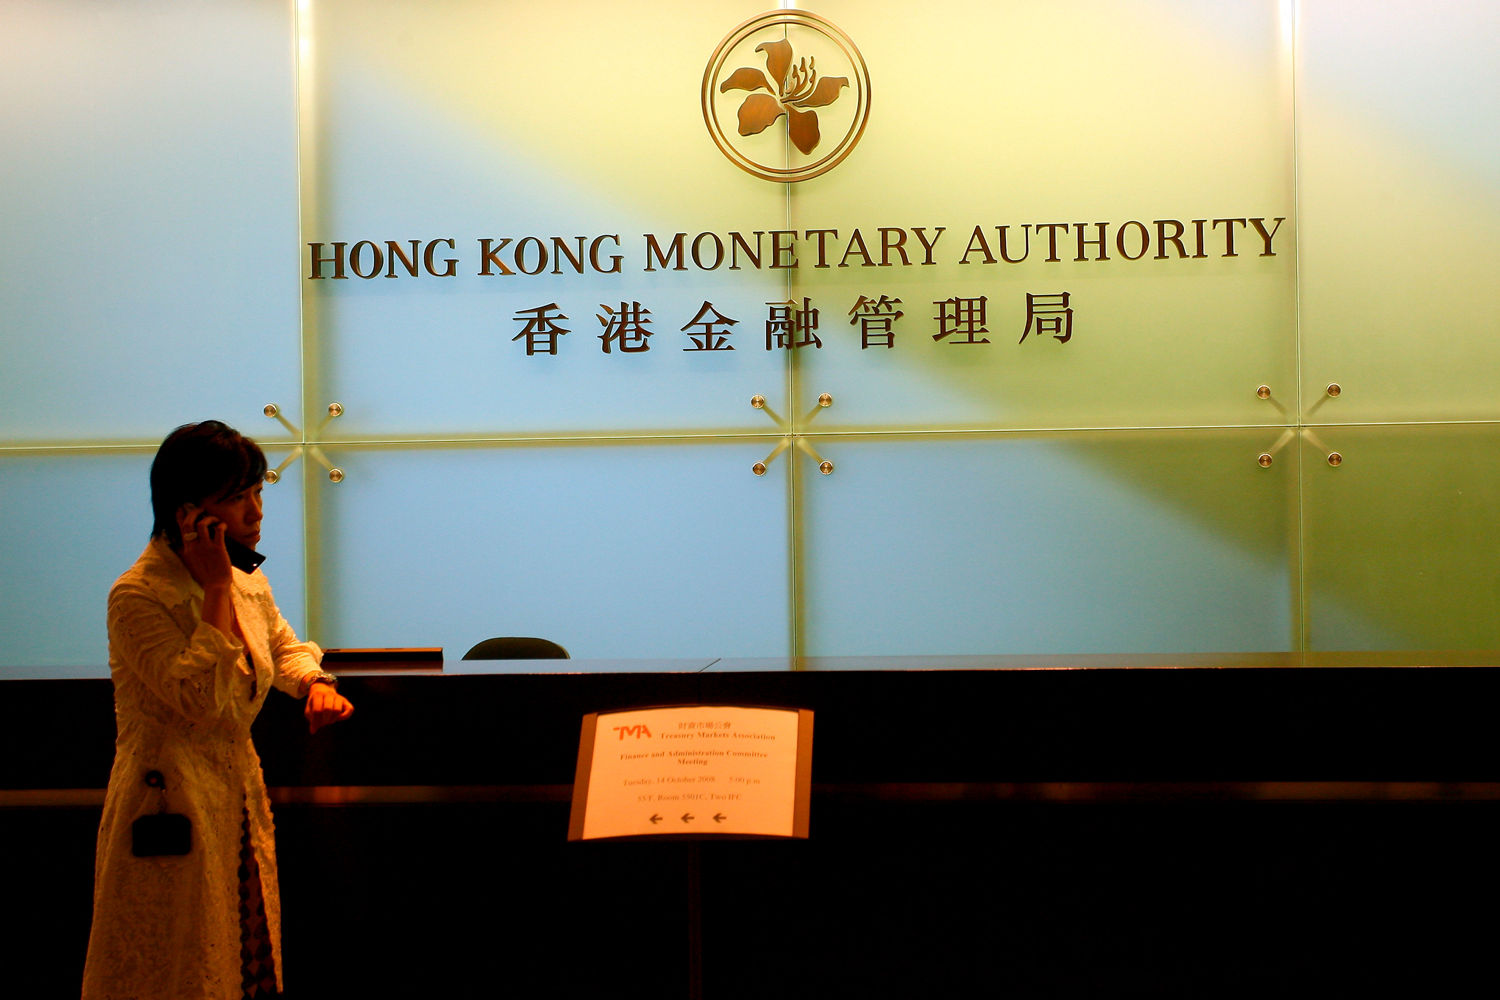 Hong Kong breaks new ground with $2.5 billion green bond issuance